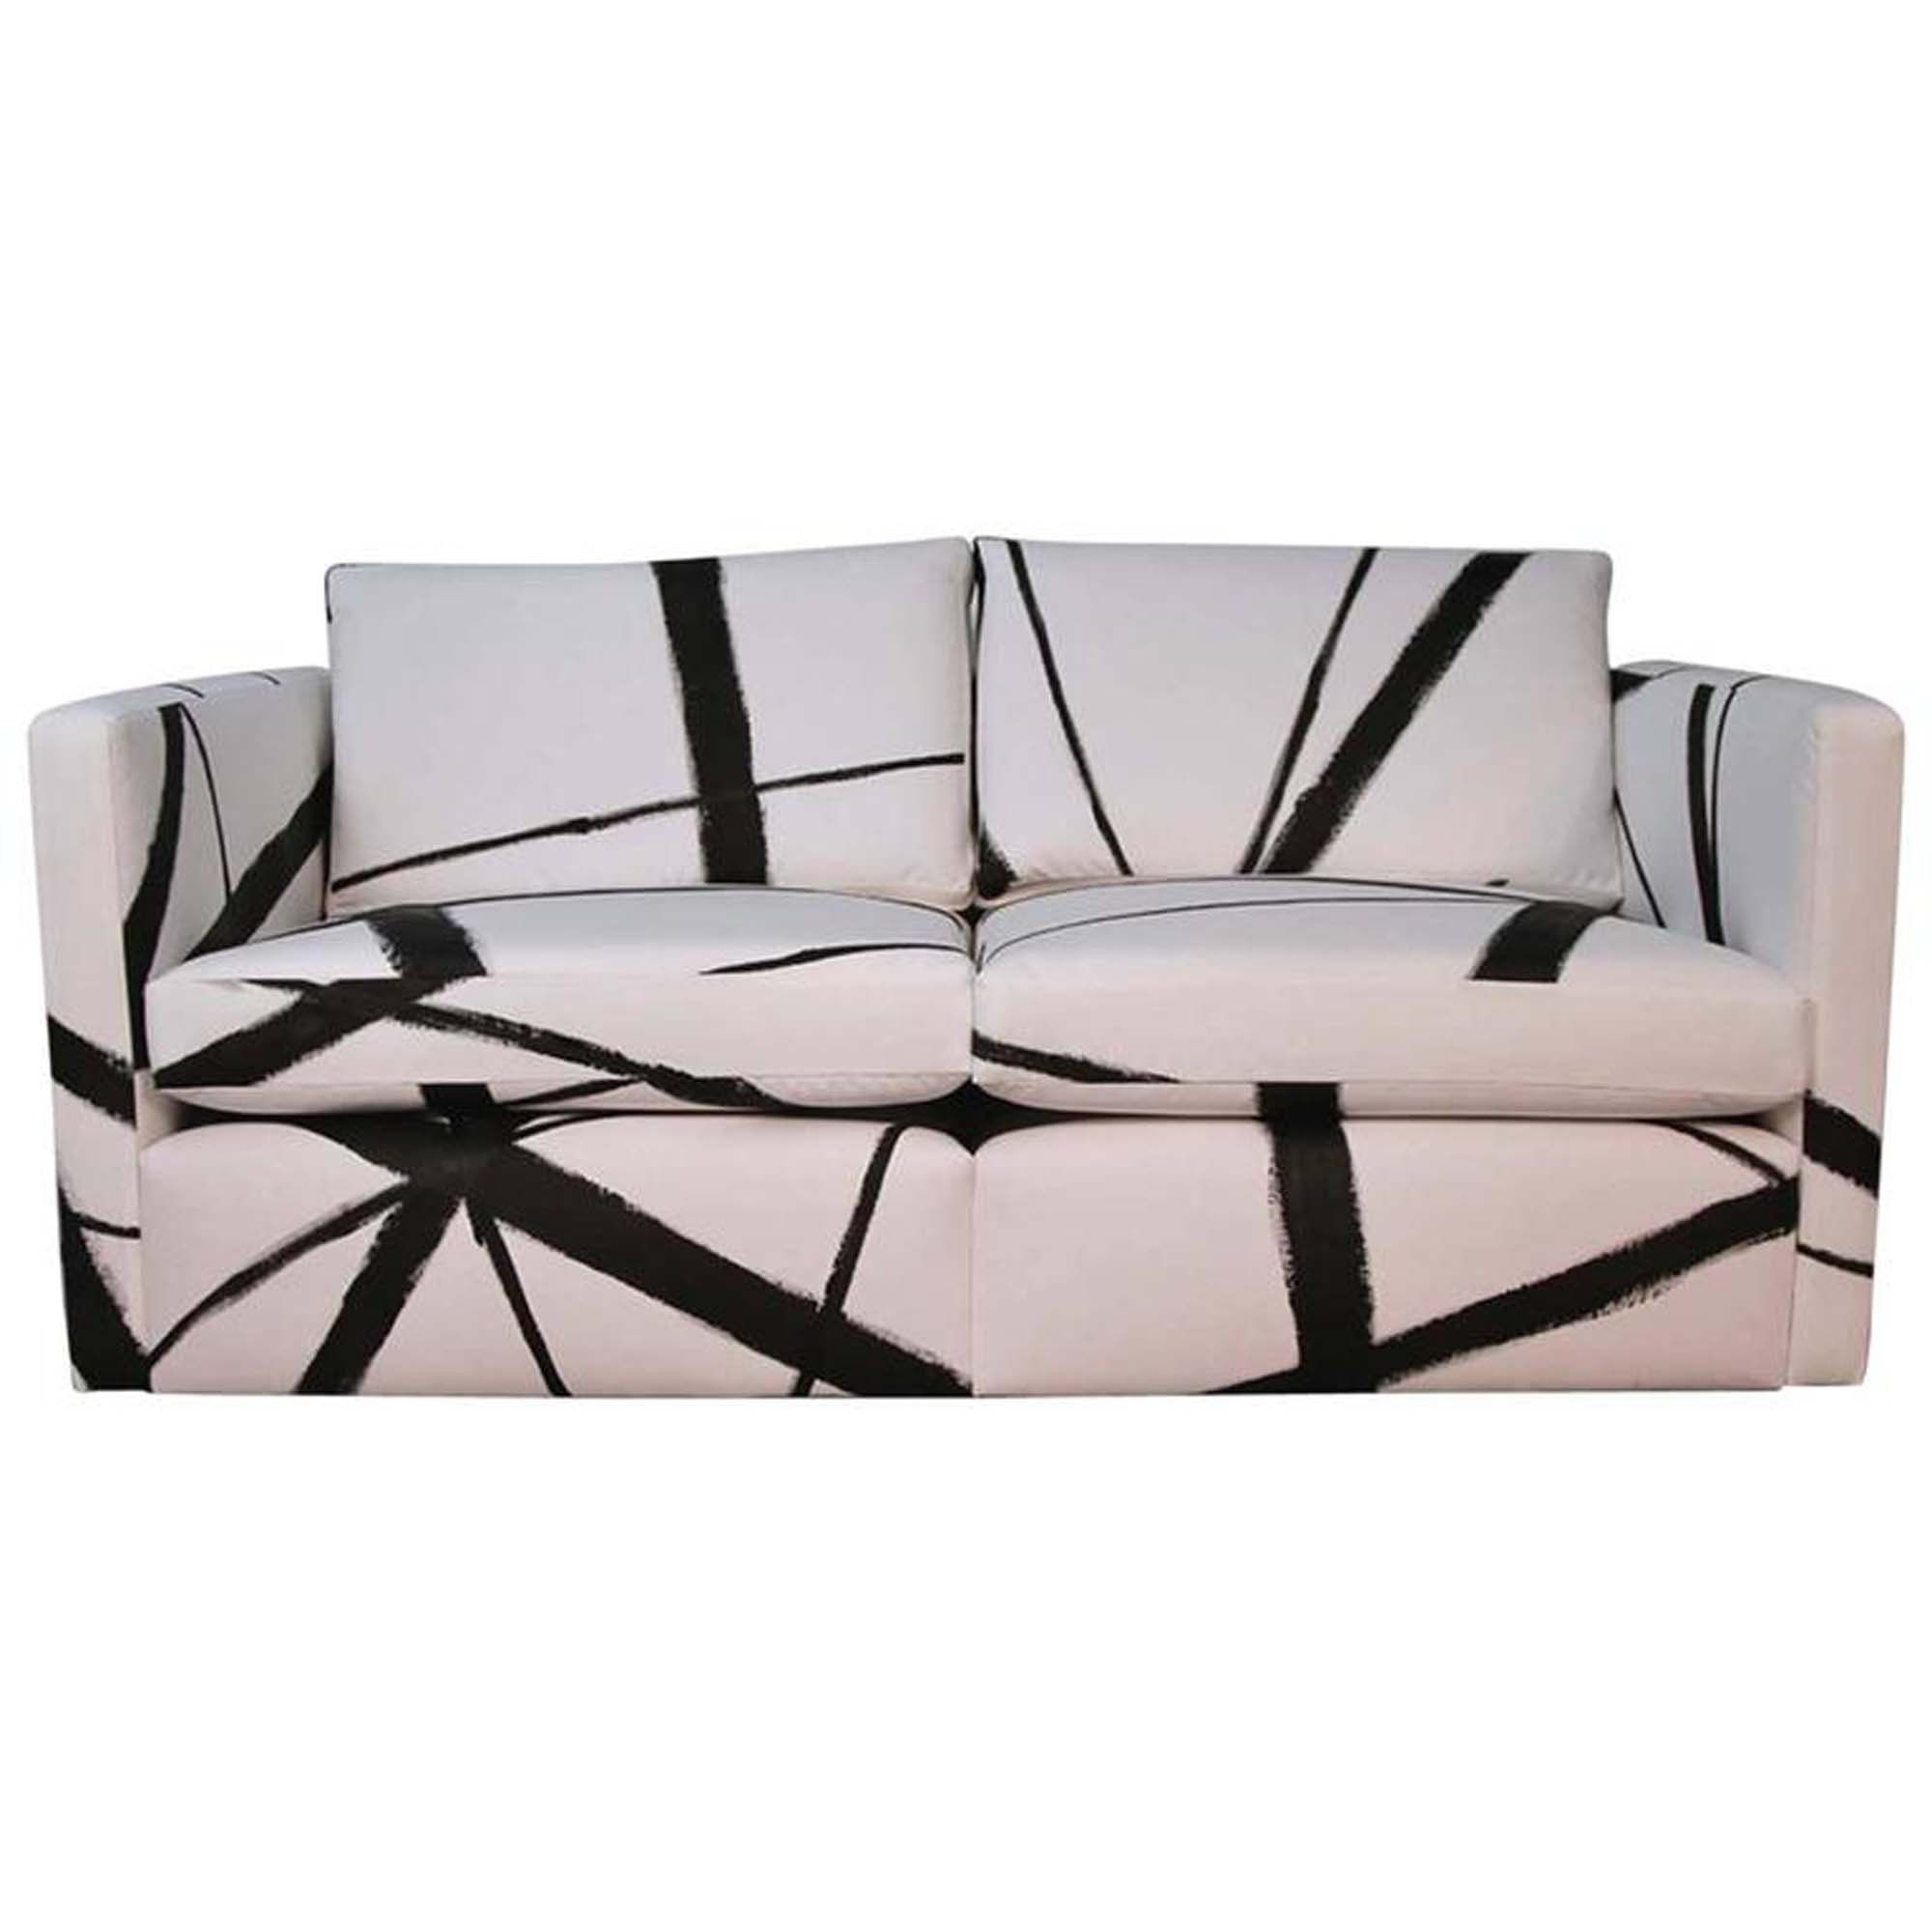 Buy knoll pfister loveseat sofa with custom handpaint by iconic